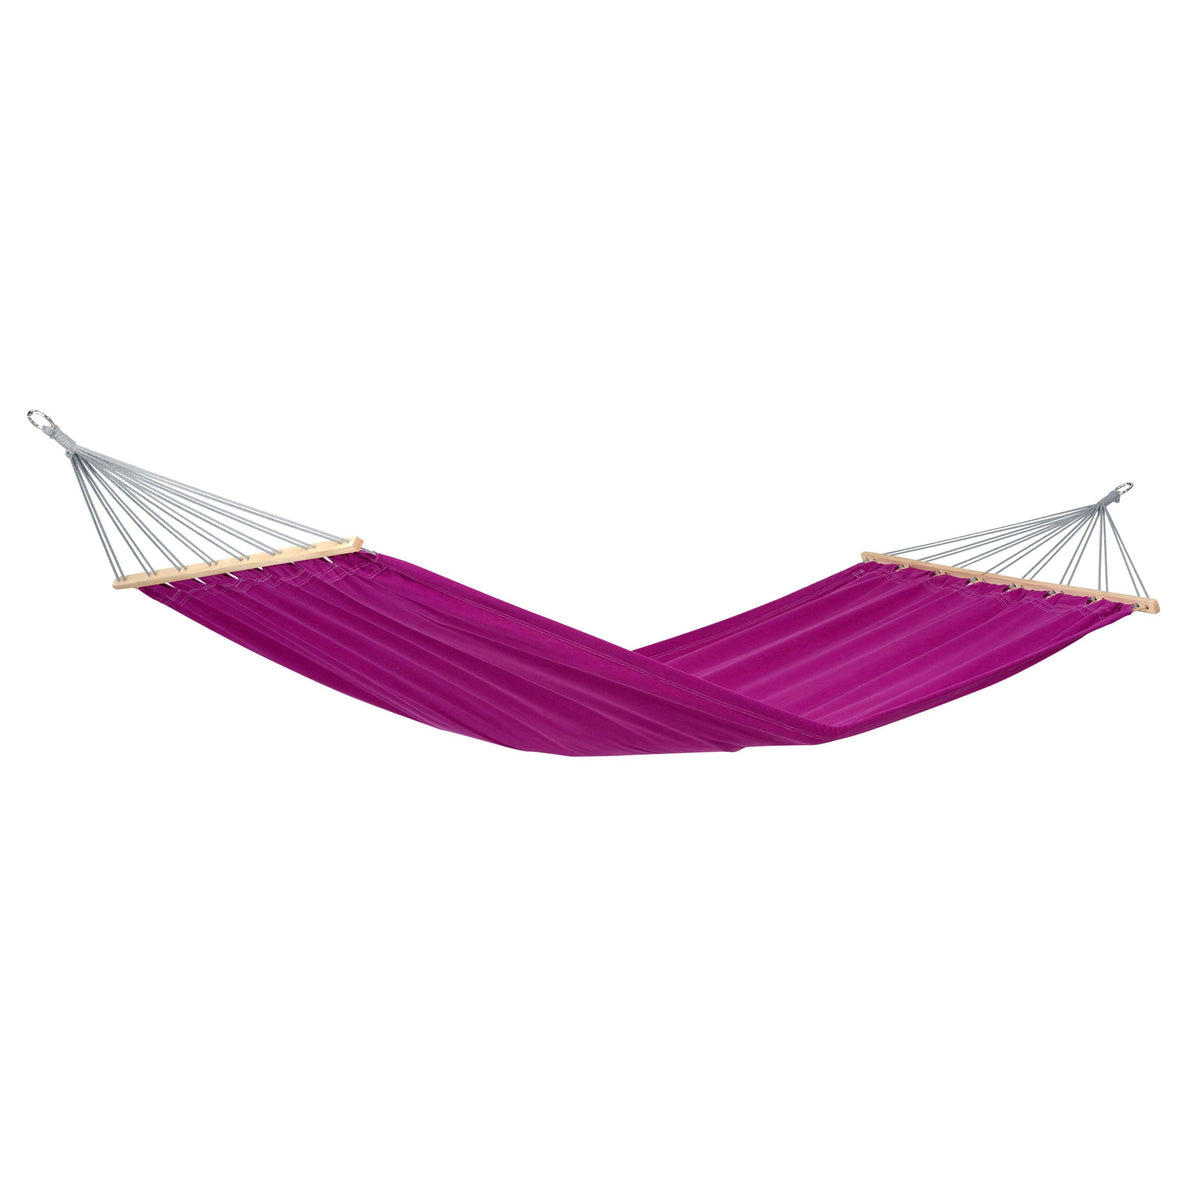 Miami Hammock, from Byer of Maine